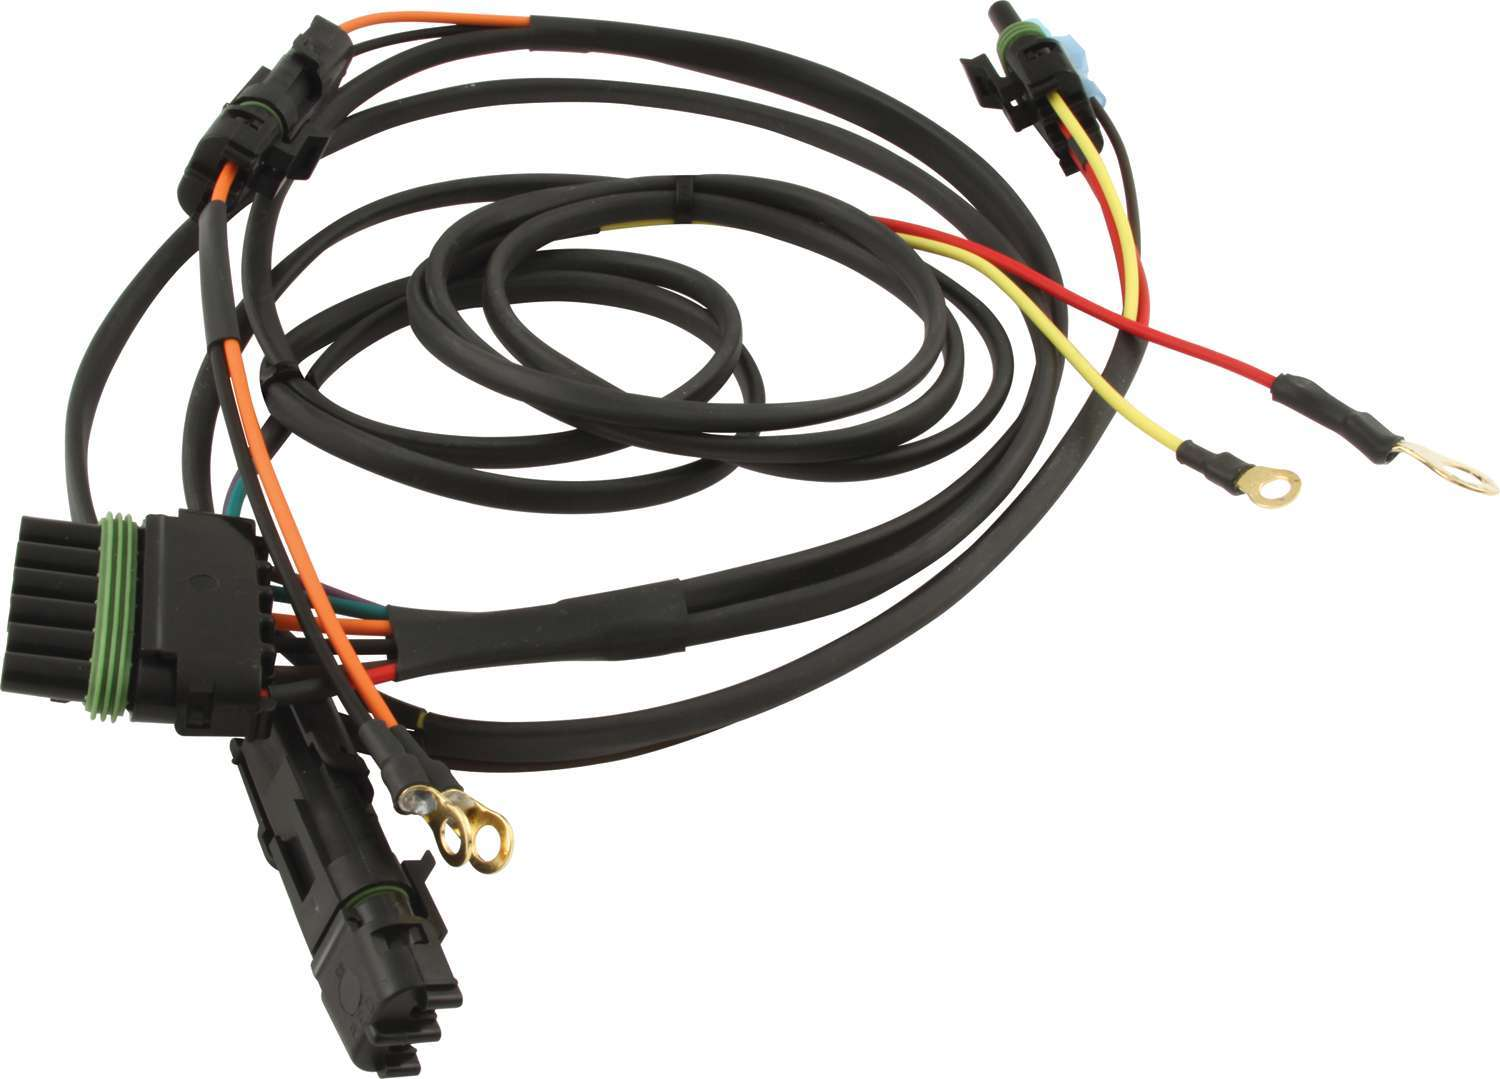 50 2031 Wiring Harness Electrical Wire